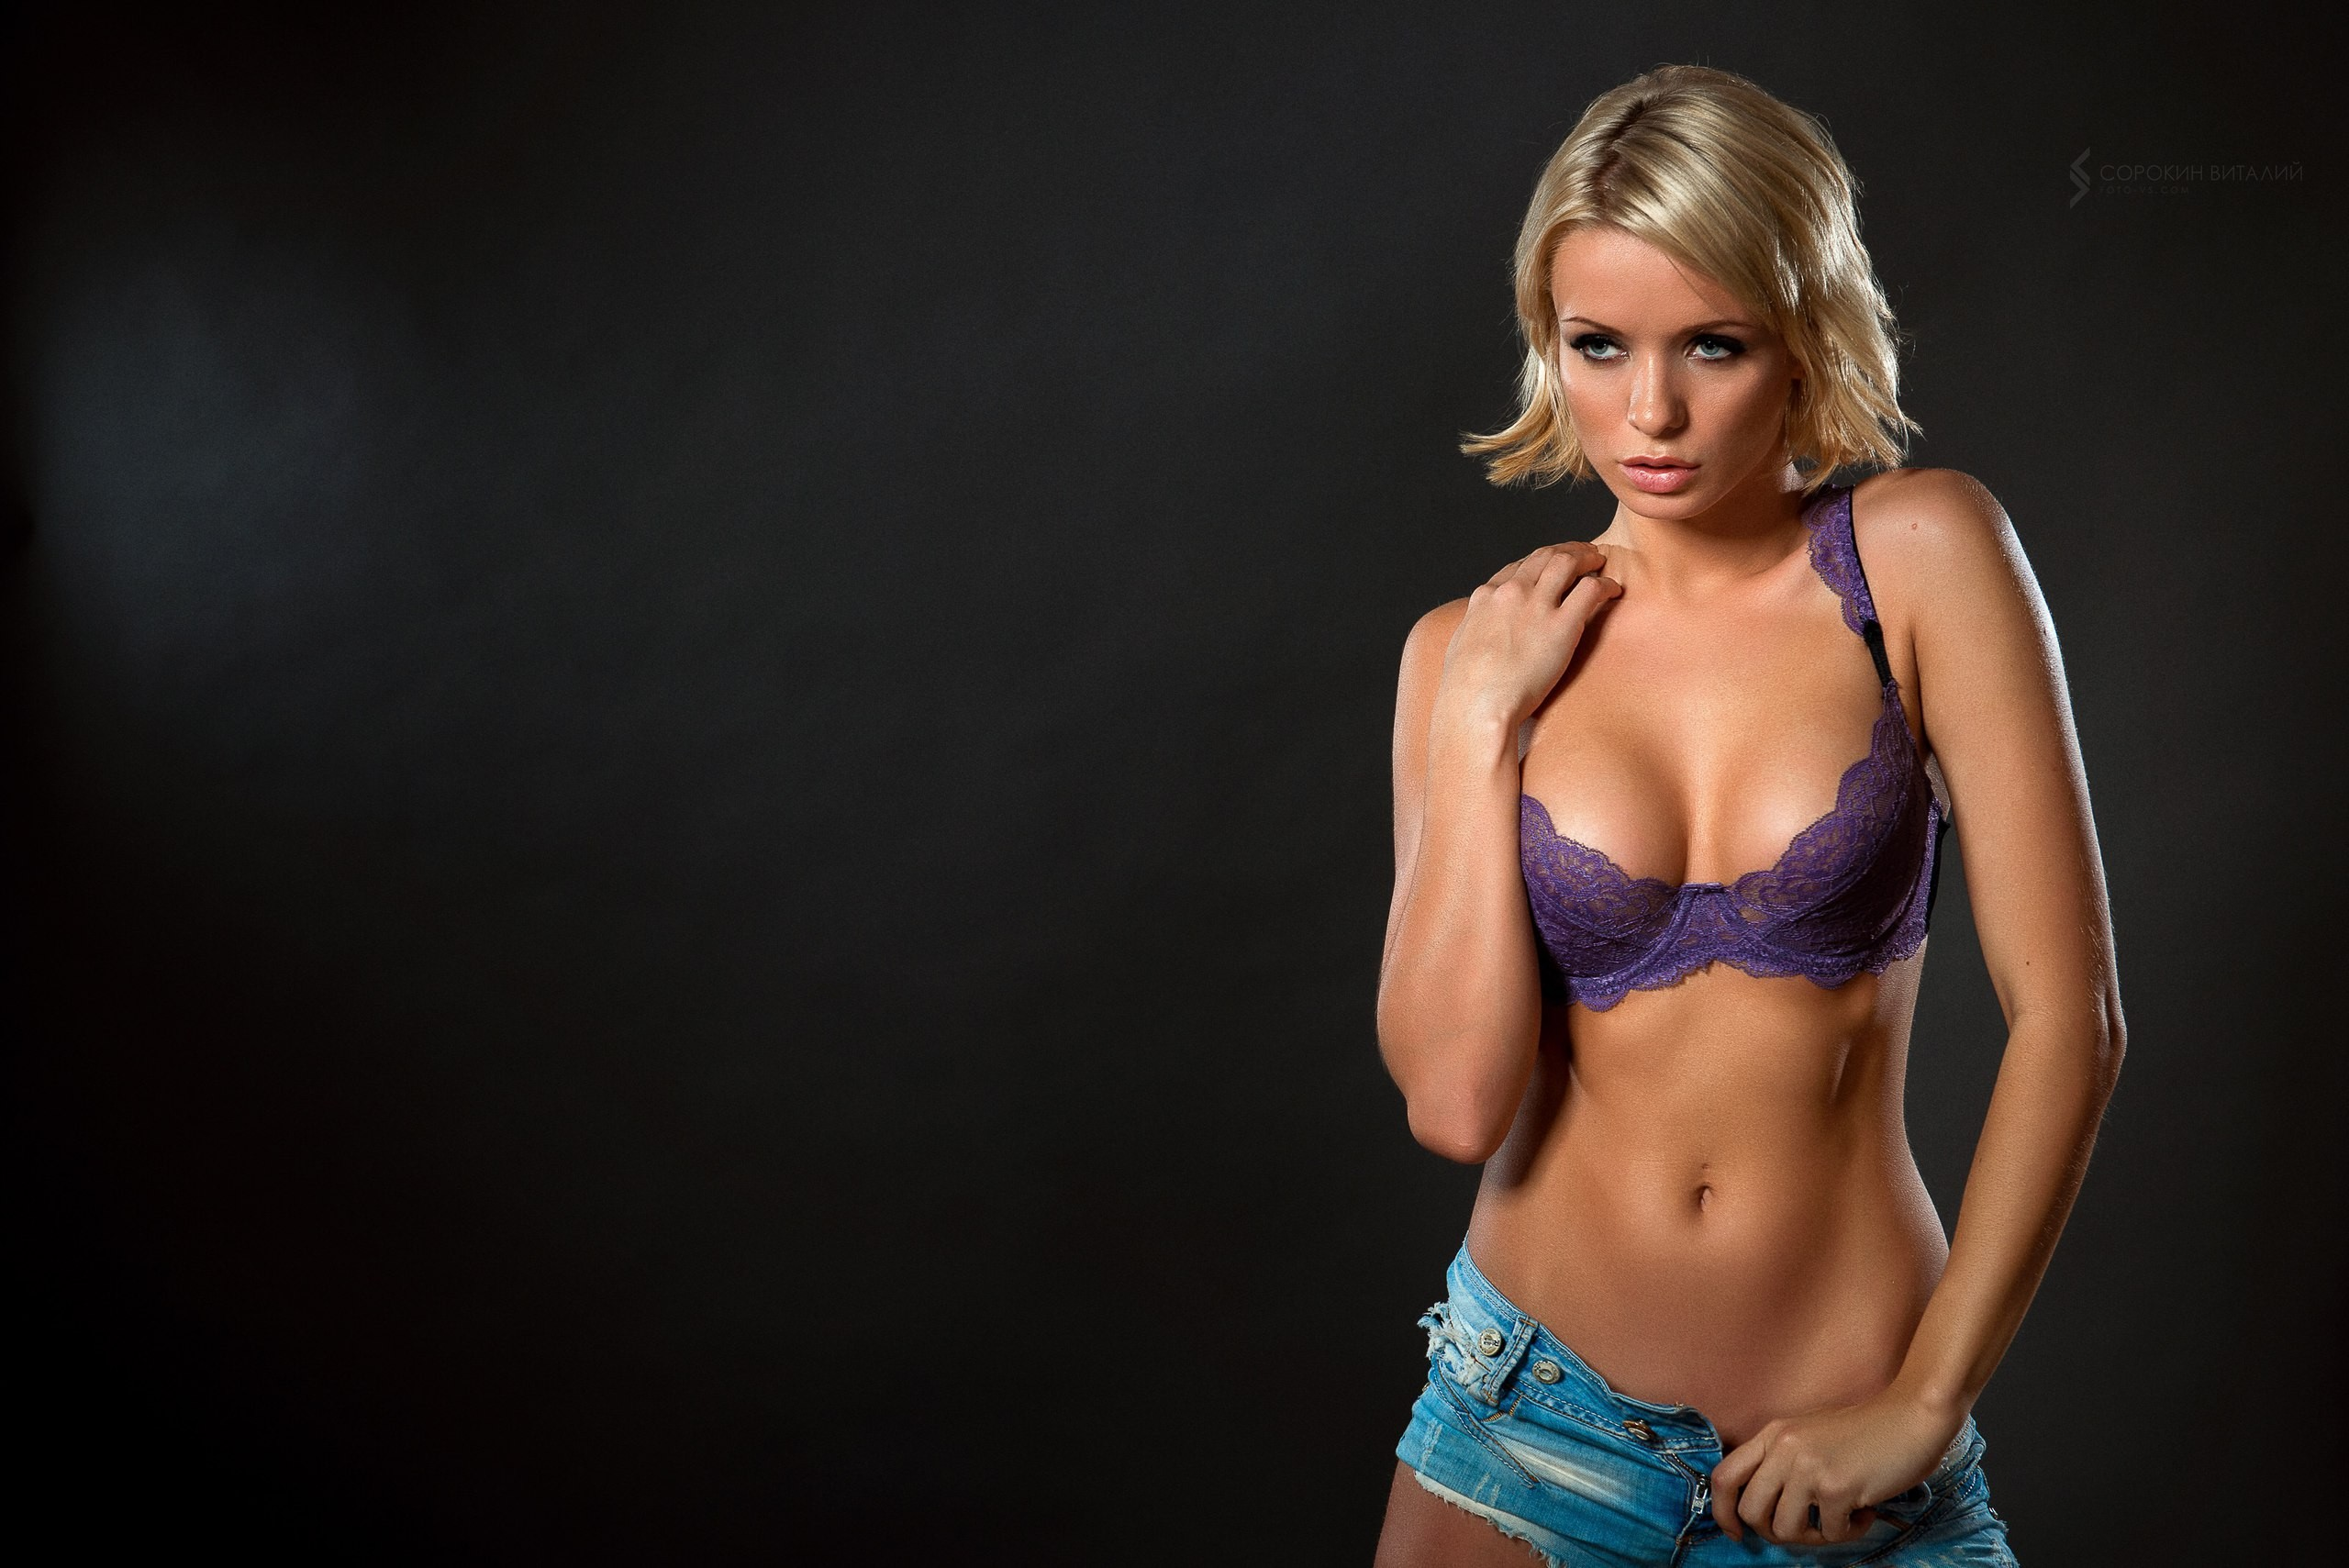 Free young porn movie sites